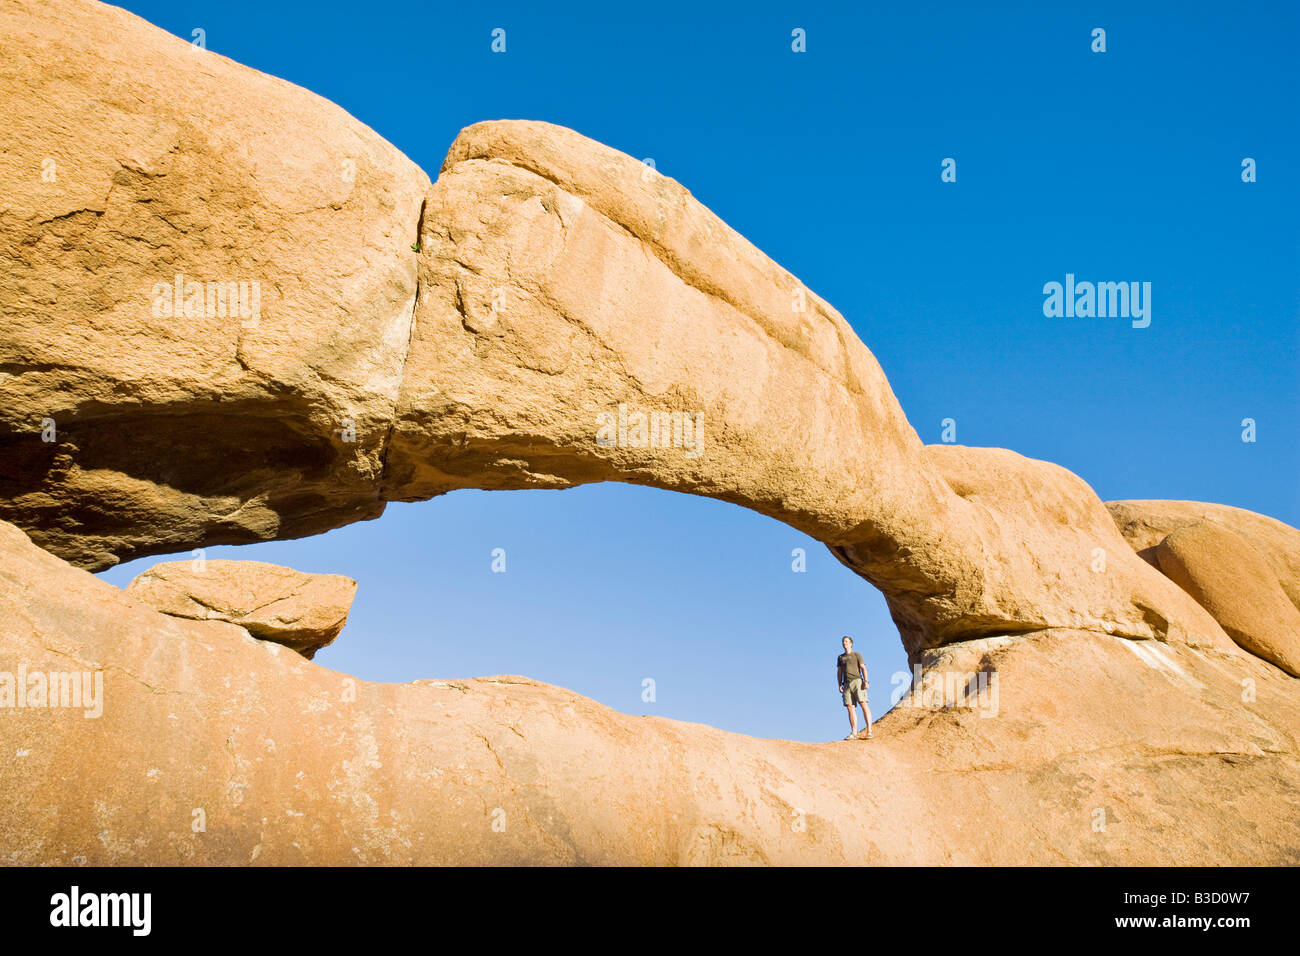 Africa, Namibia, Arco Naturale a Spitzkoppe Immagini Stock